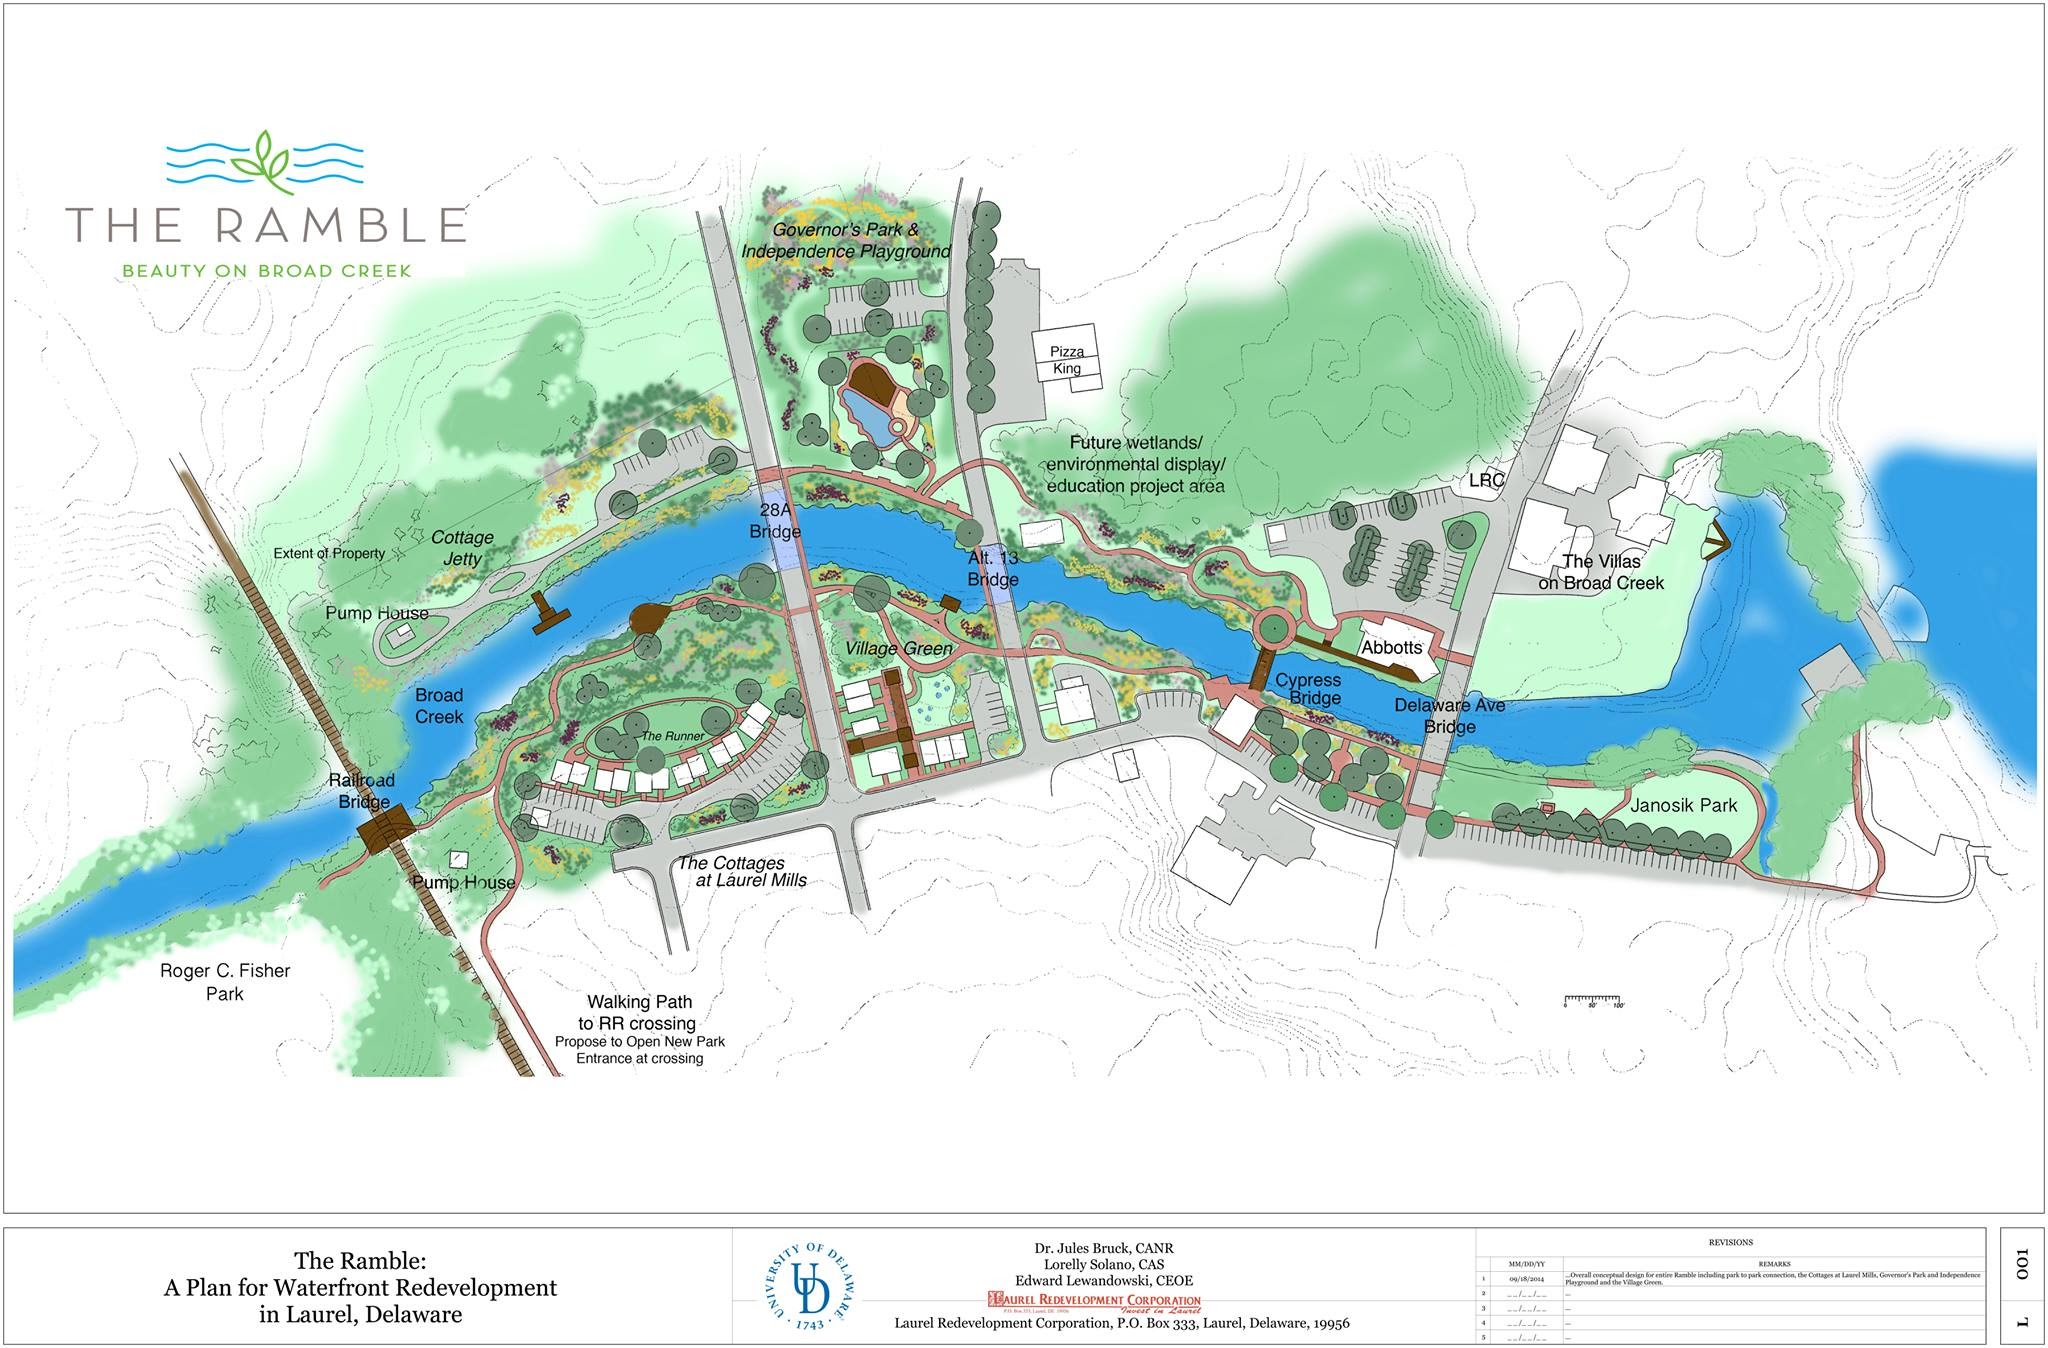 Proposal for revitalization in Laurel, Delaware